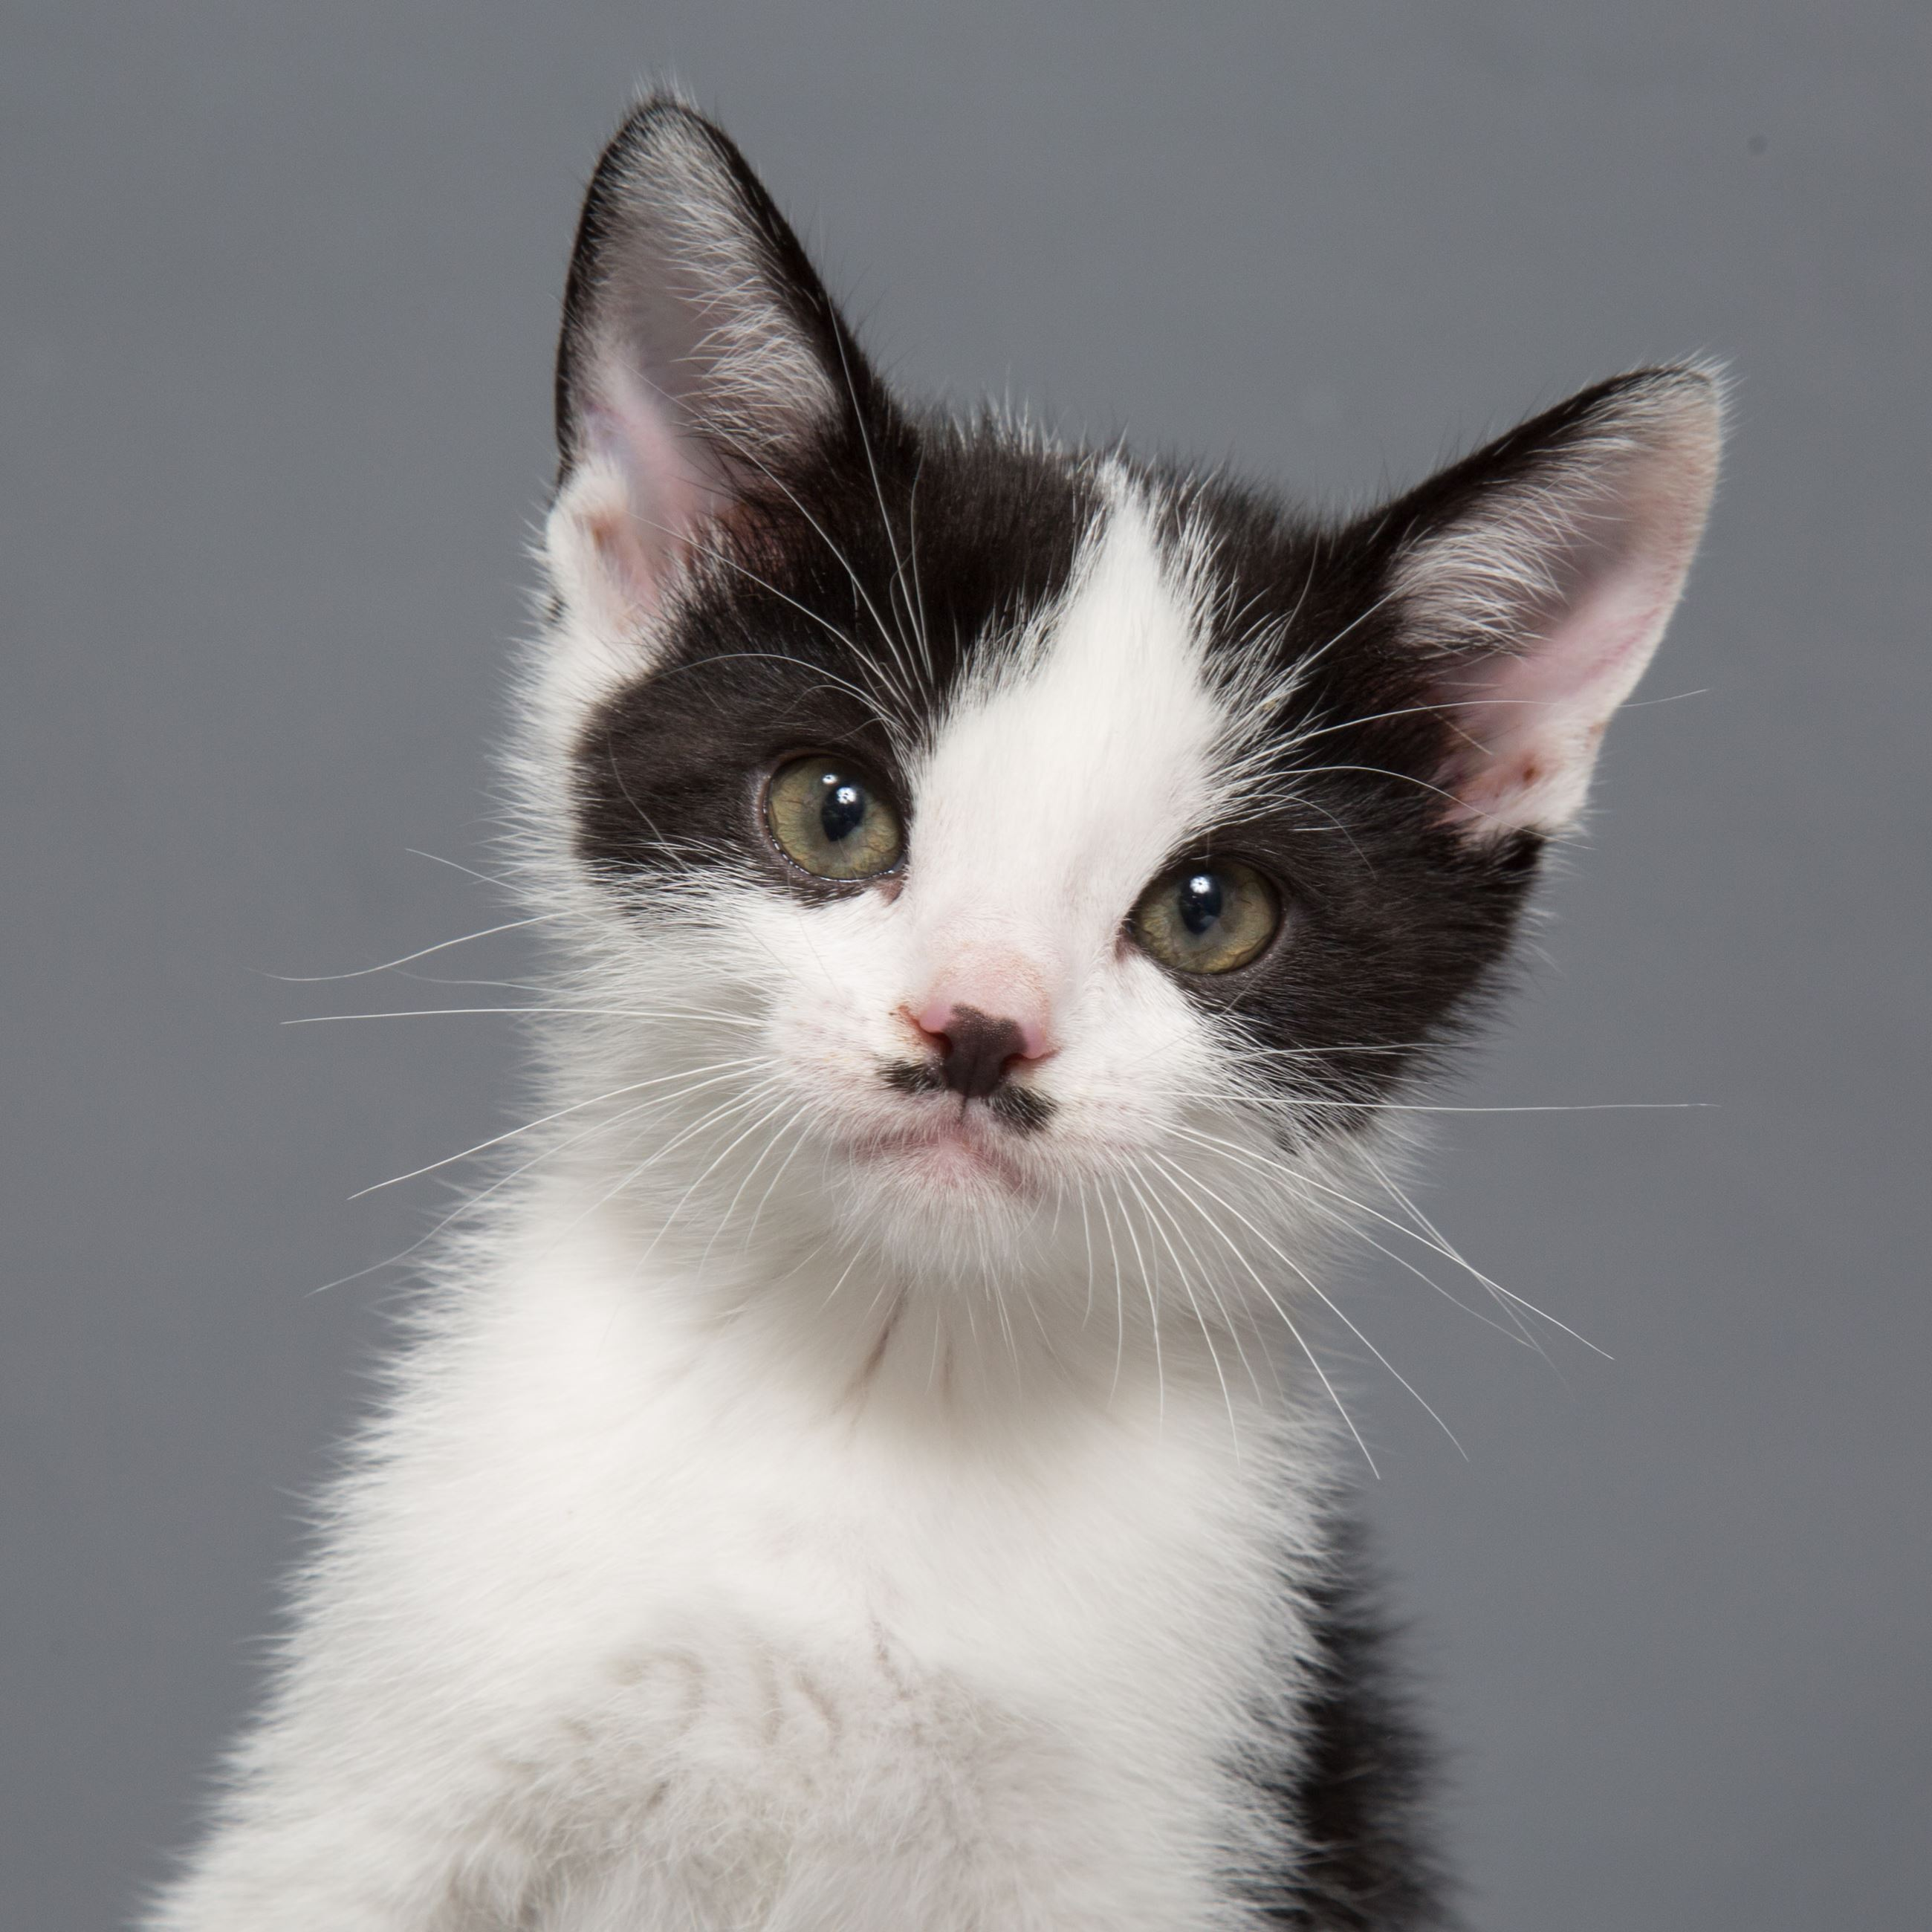 A black and white kitten with a curly mustache